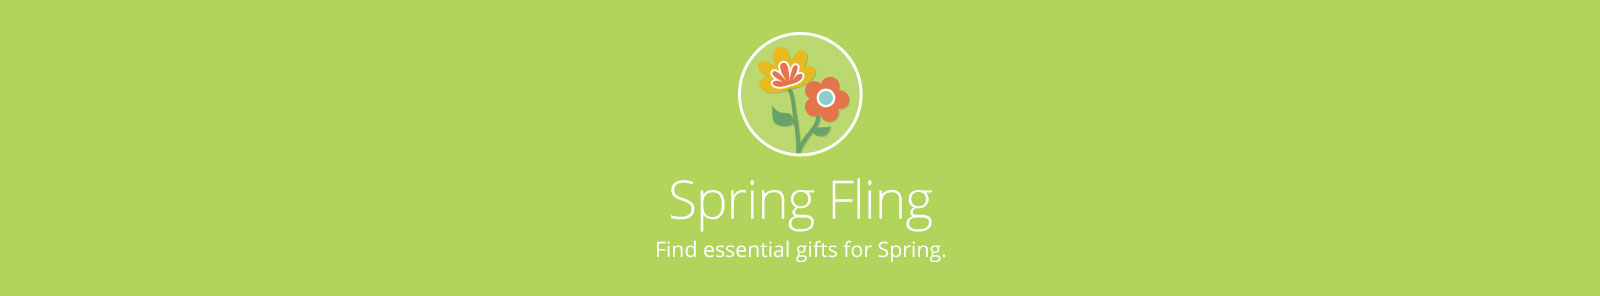 Spring Gifts Banner